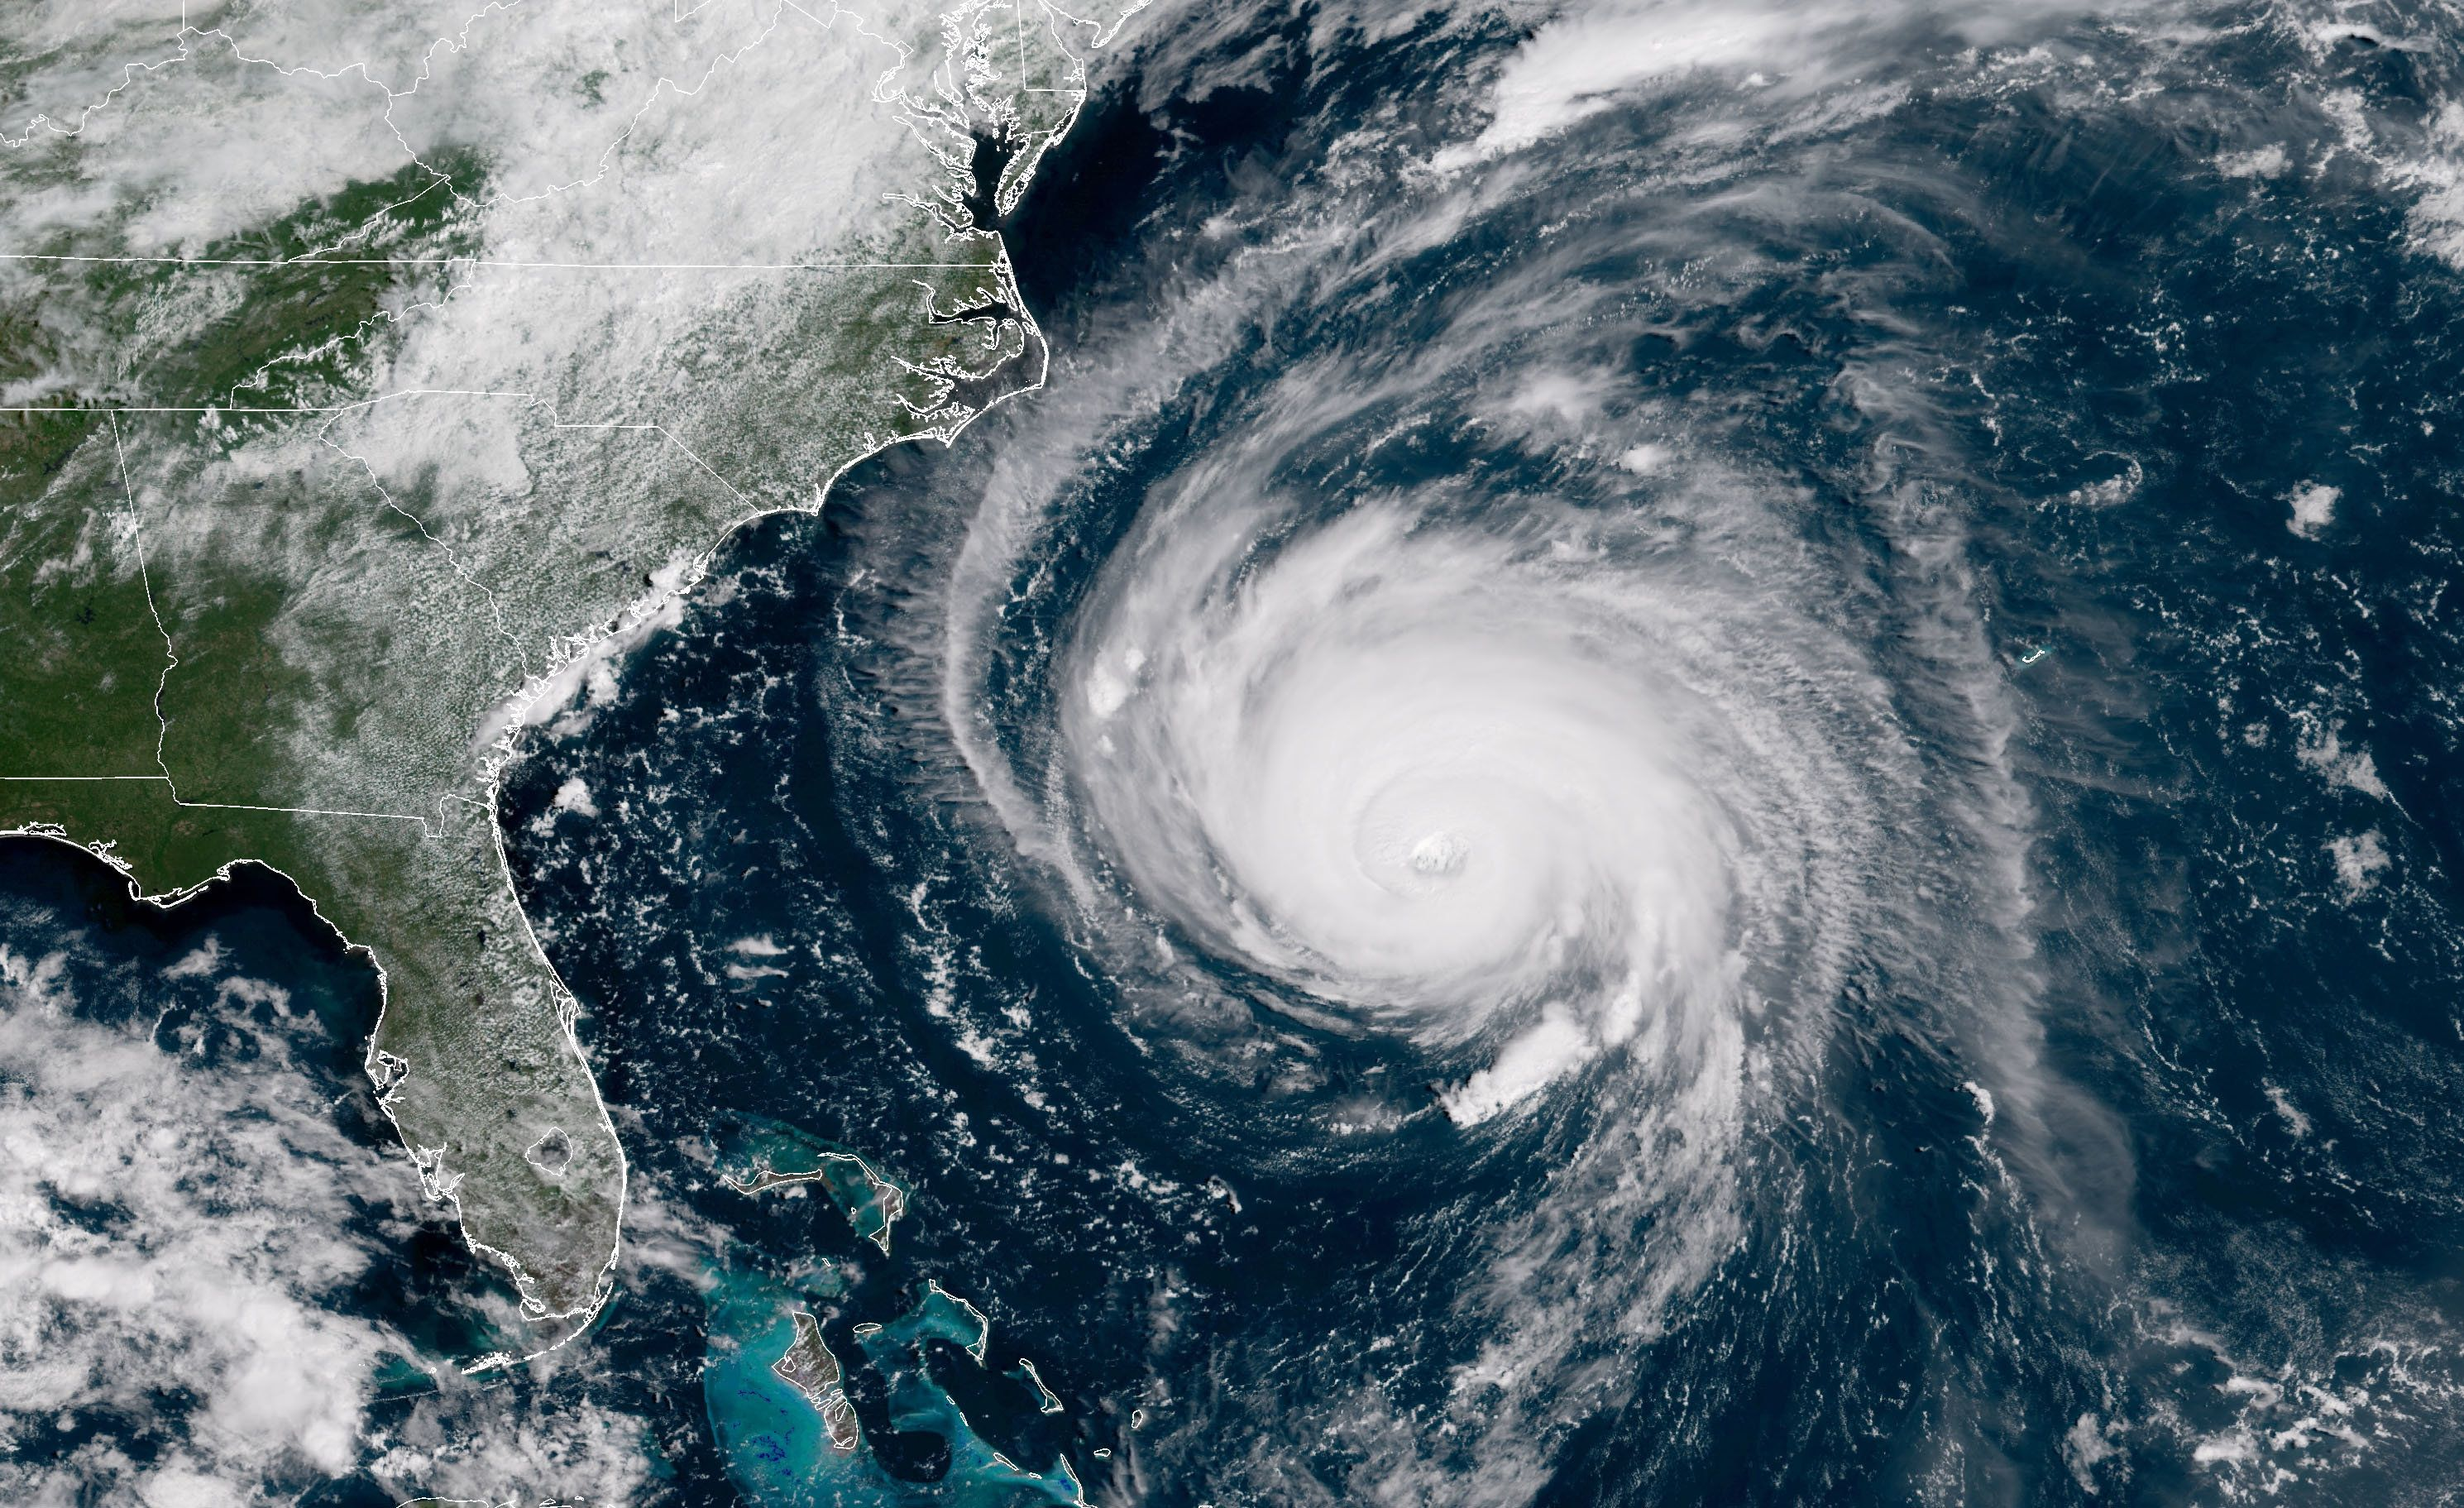 IN SPACE - SEPTEMBER 12:  In this satellite image provided by U.S. National Oceanic and Atmospheric Administration (NOAA), Hurricane Florence churns through the Atlantic Ocean toward the U.S. East Coast on September 12, 2018. Florence slowed its approach to the U.S. today and was forecast to turn south, stalling along the  North Carolina and South Carolina coast and bringing with it torrential rain, high winds and a dangerous storm surge tomorrow through Saturday.  (Photo by NOAA via Getty Images)